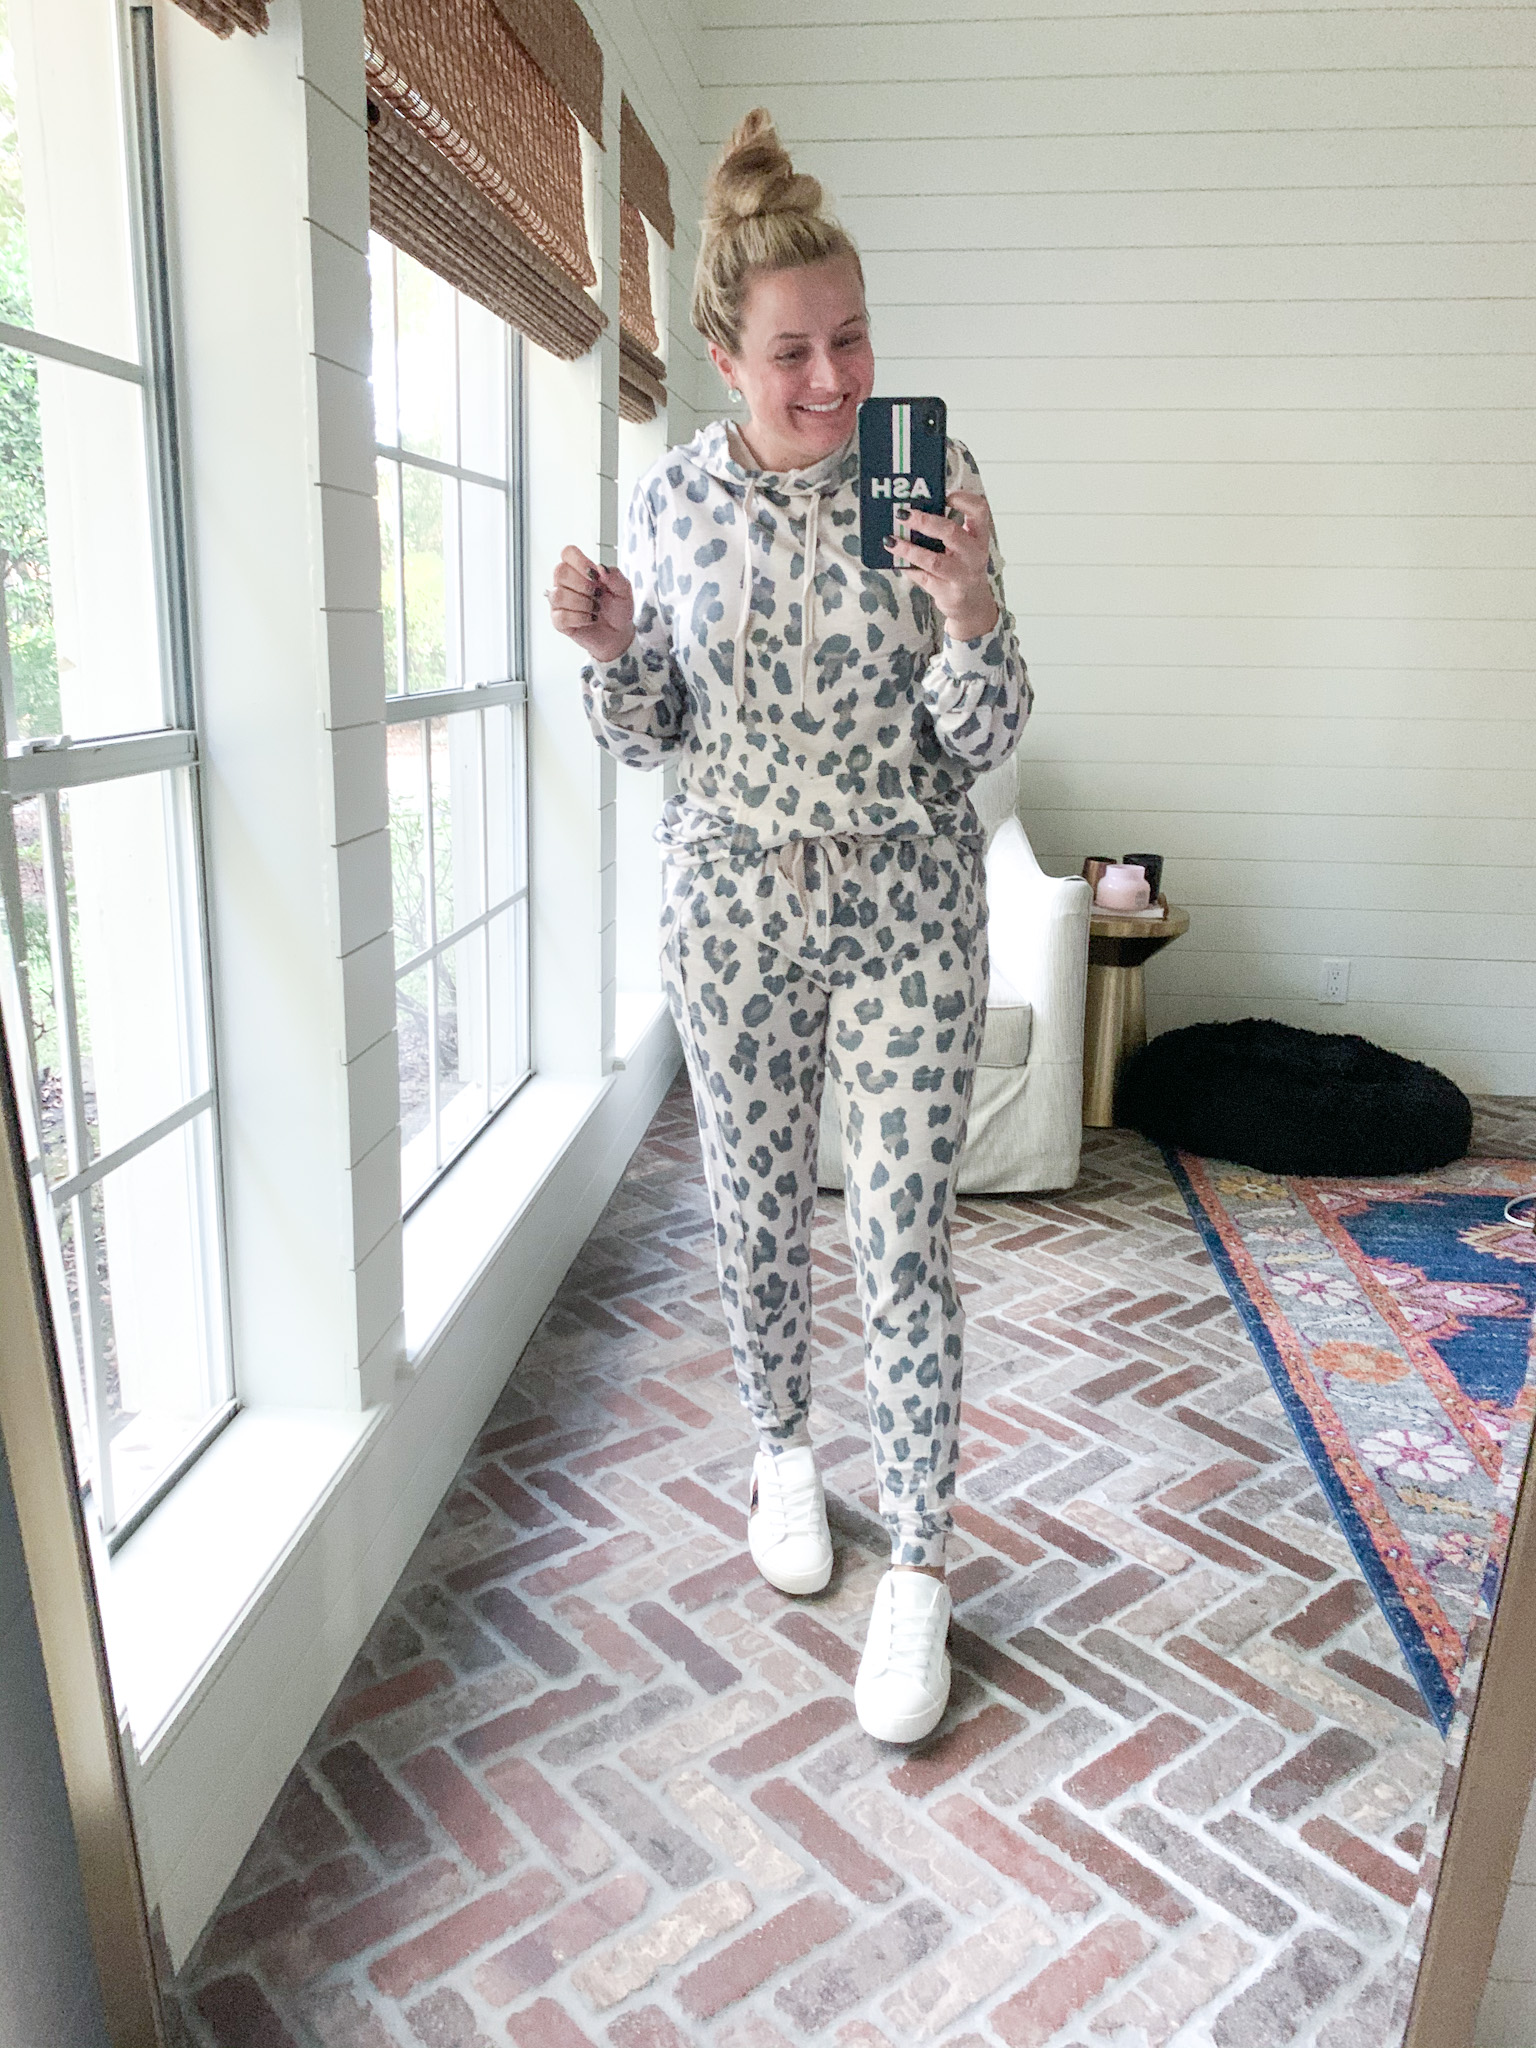 Walmart Womens Clothes by popular Houston fashion blog, Fancy Ashley: image of a woman wearing a Walmart Scoop Women's Leopard Print French Terry Hoodie and Scoop Women's Animal Printed Joggers with Front Seaming.